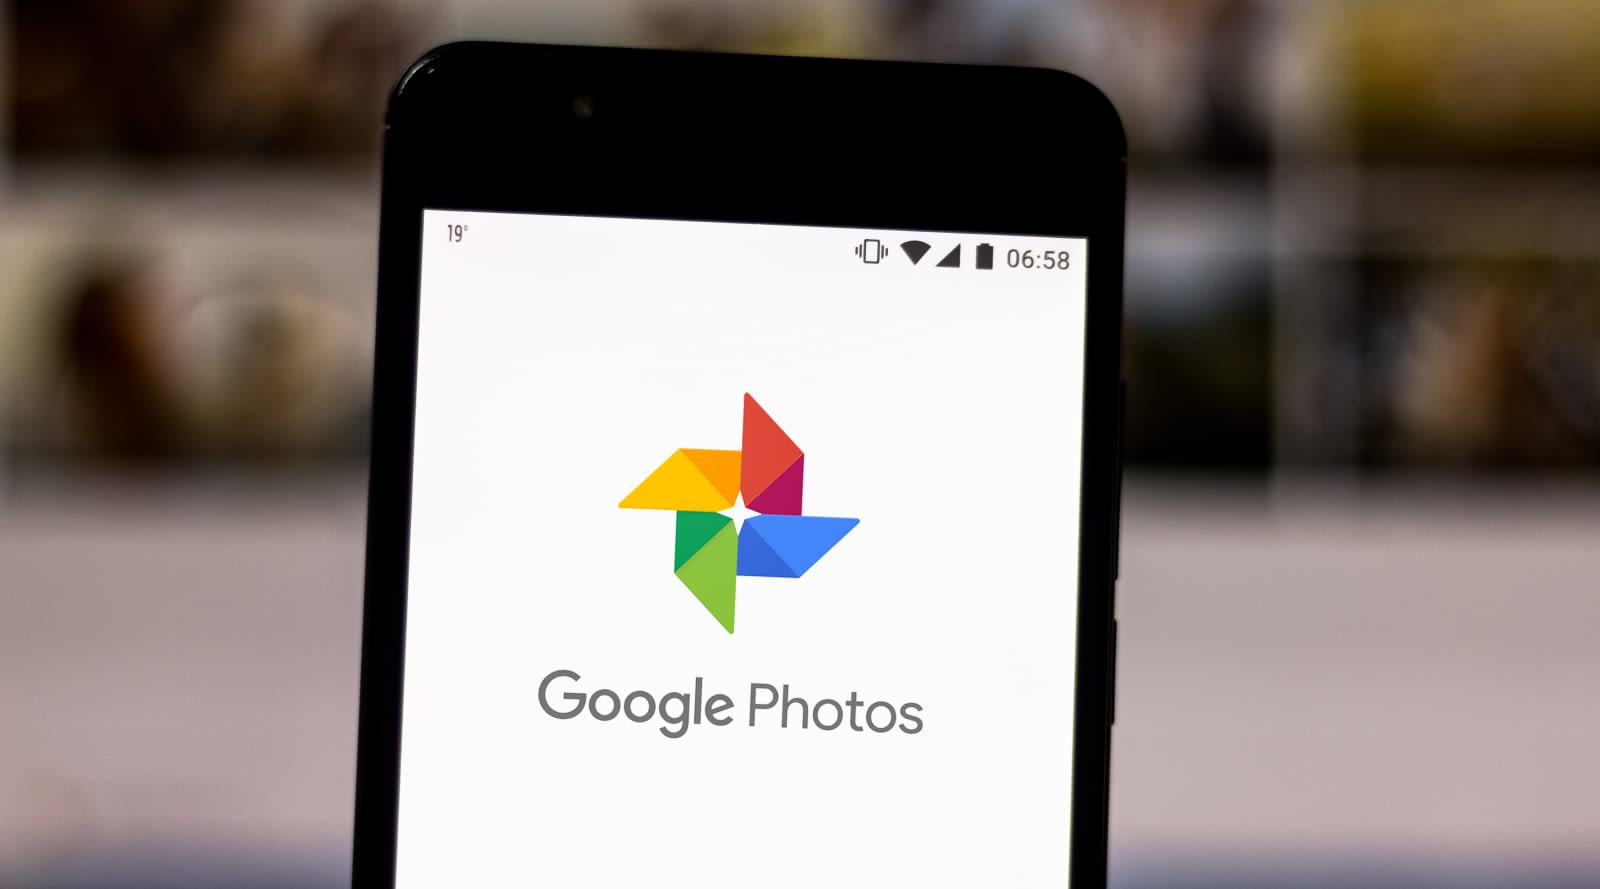 Google Photos will let you order same-day prints from